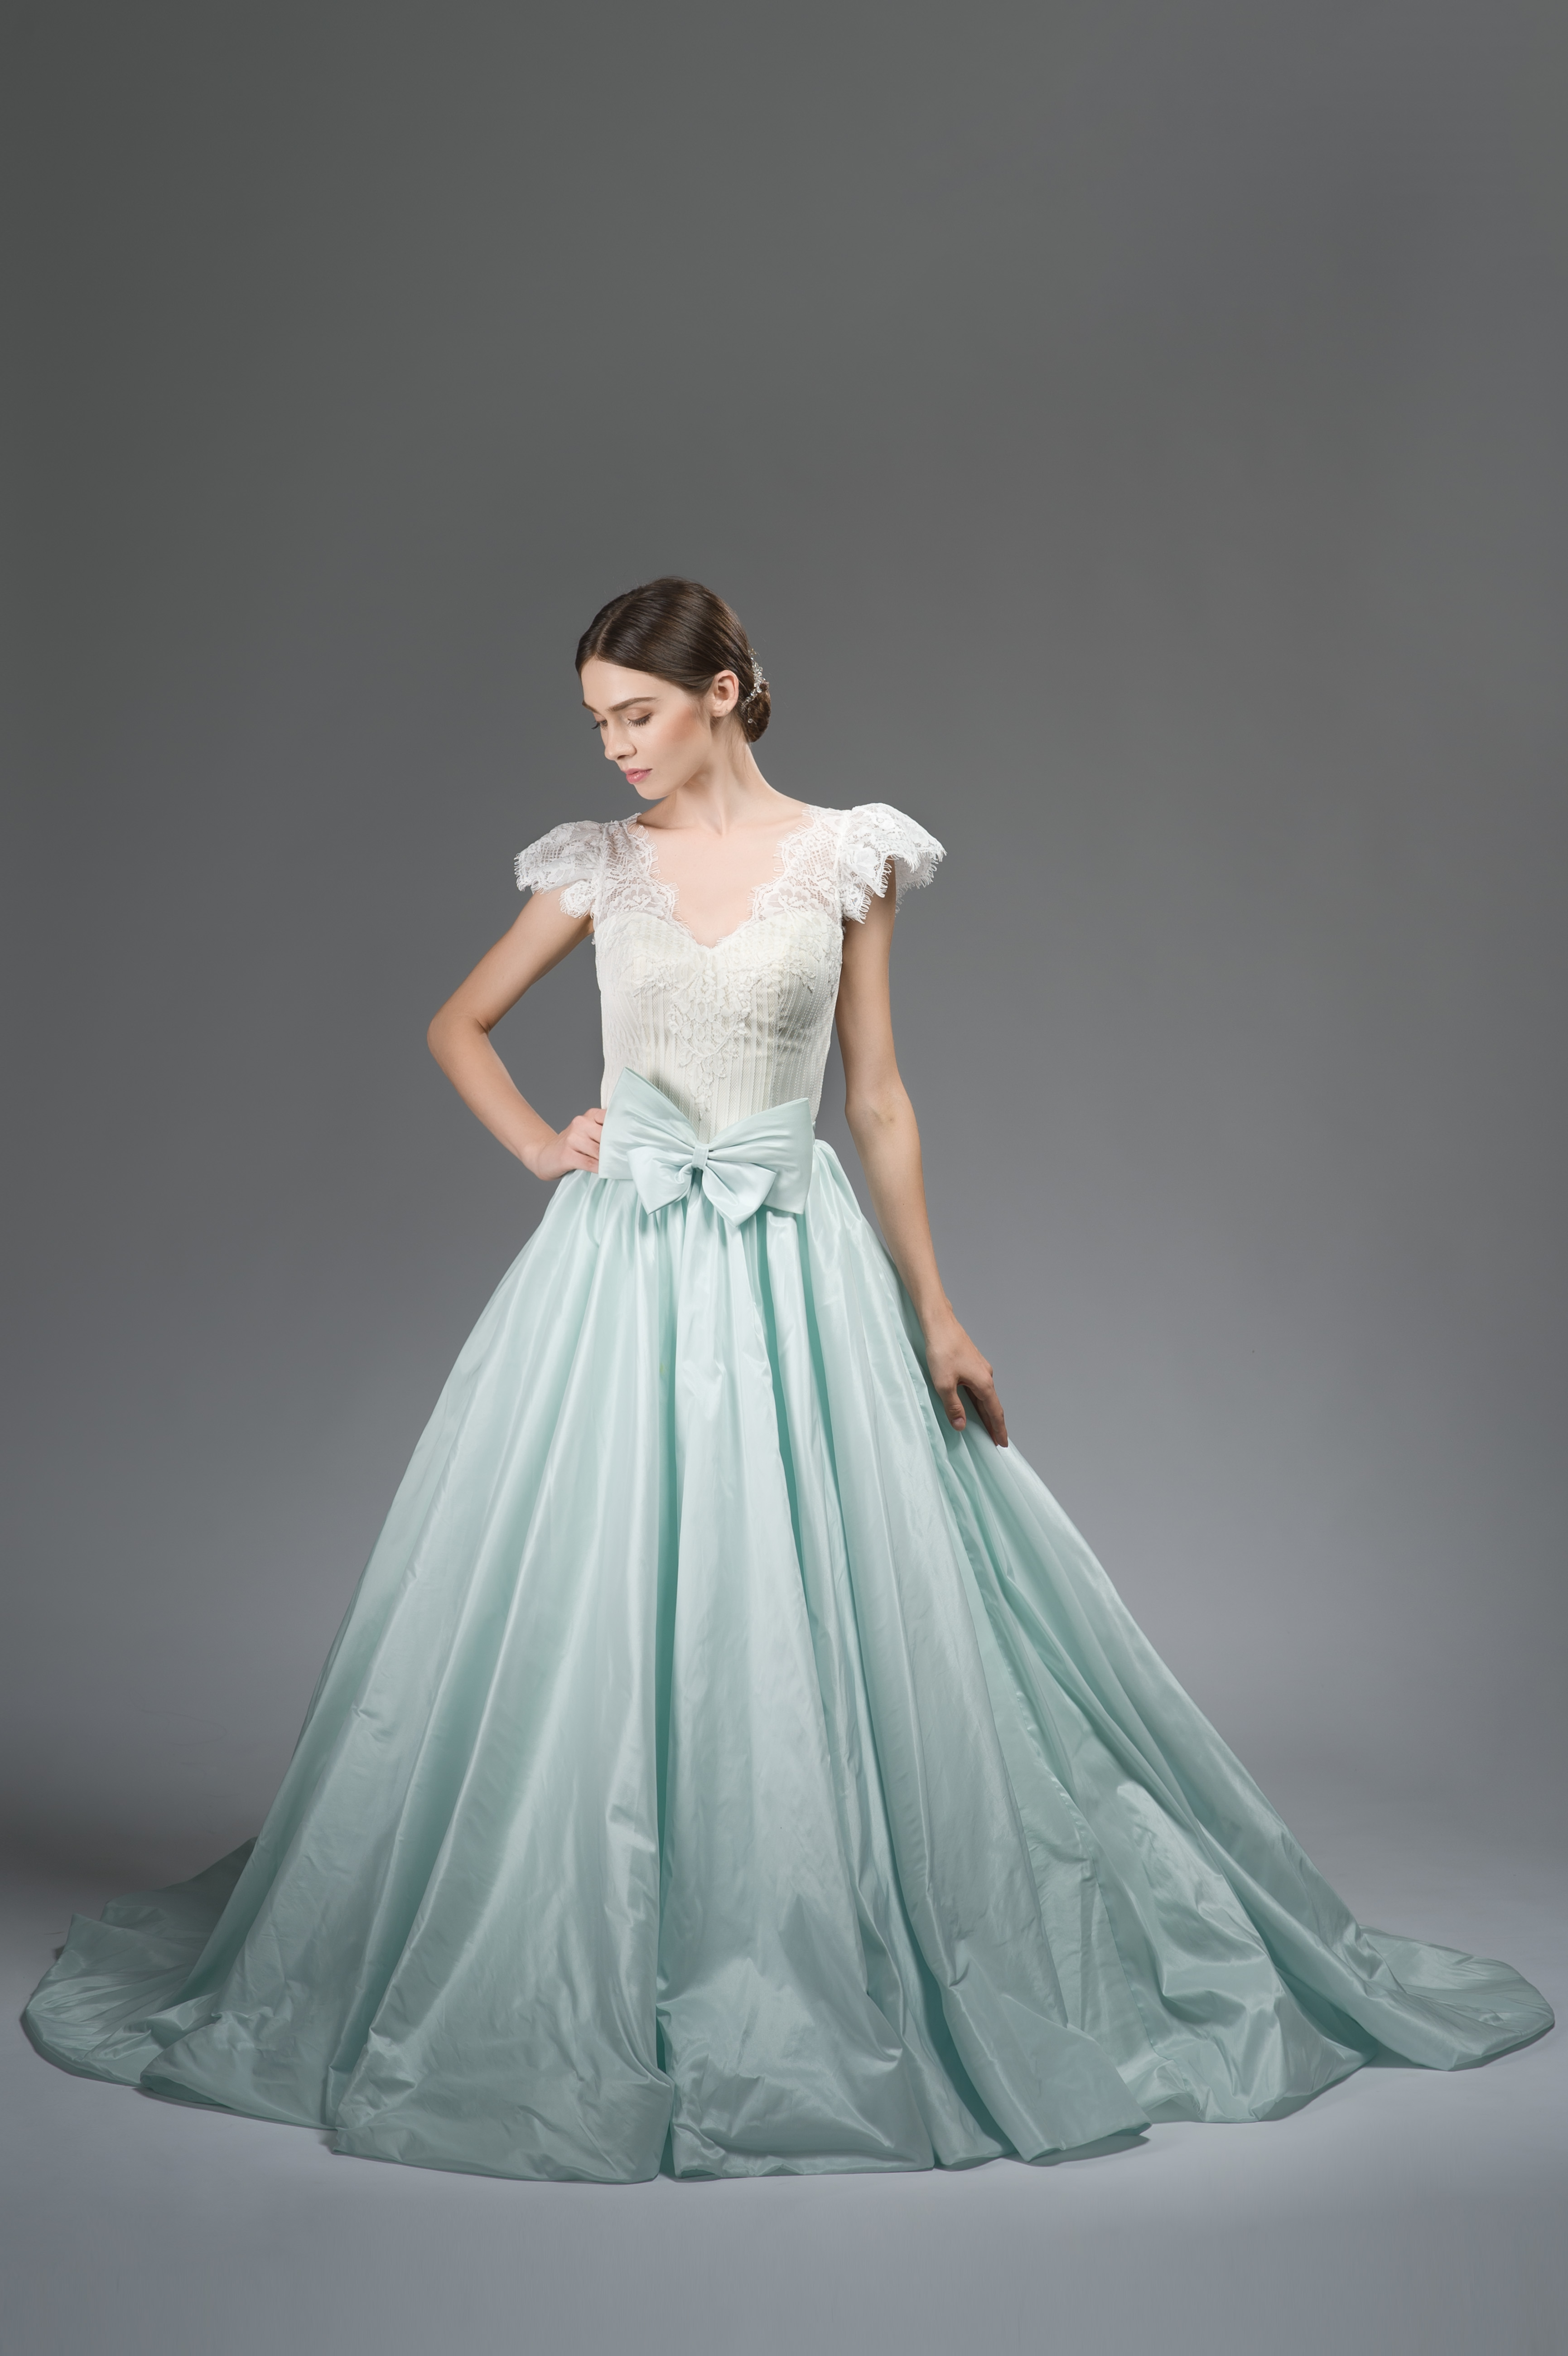 Fantastic Bridal Gowns Singapore Component - All Wedding Dresses ...